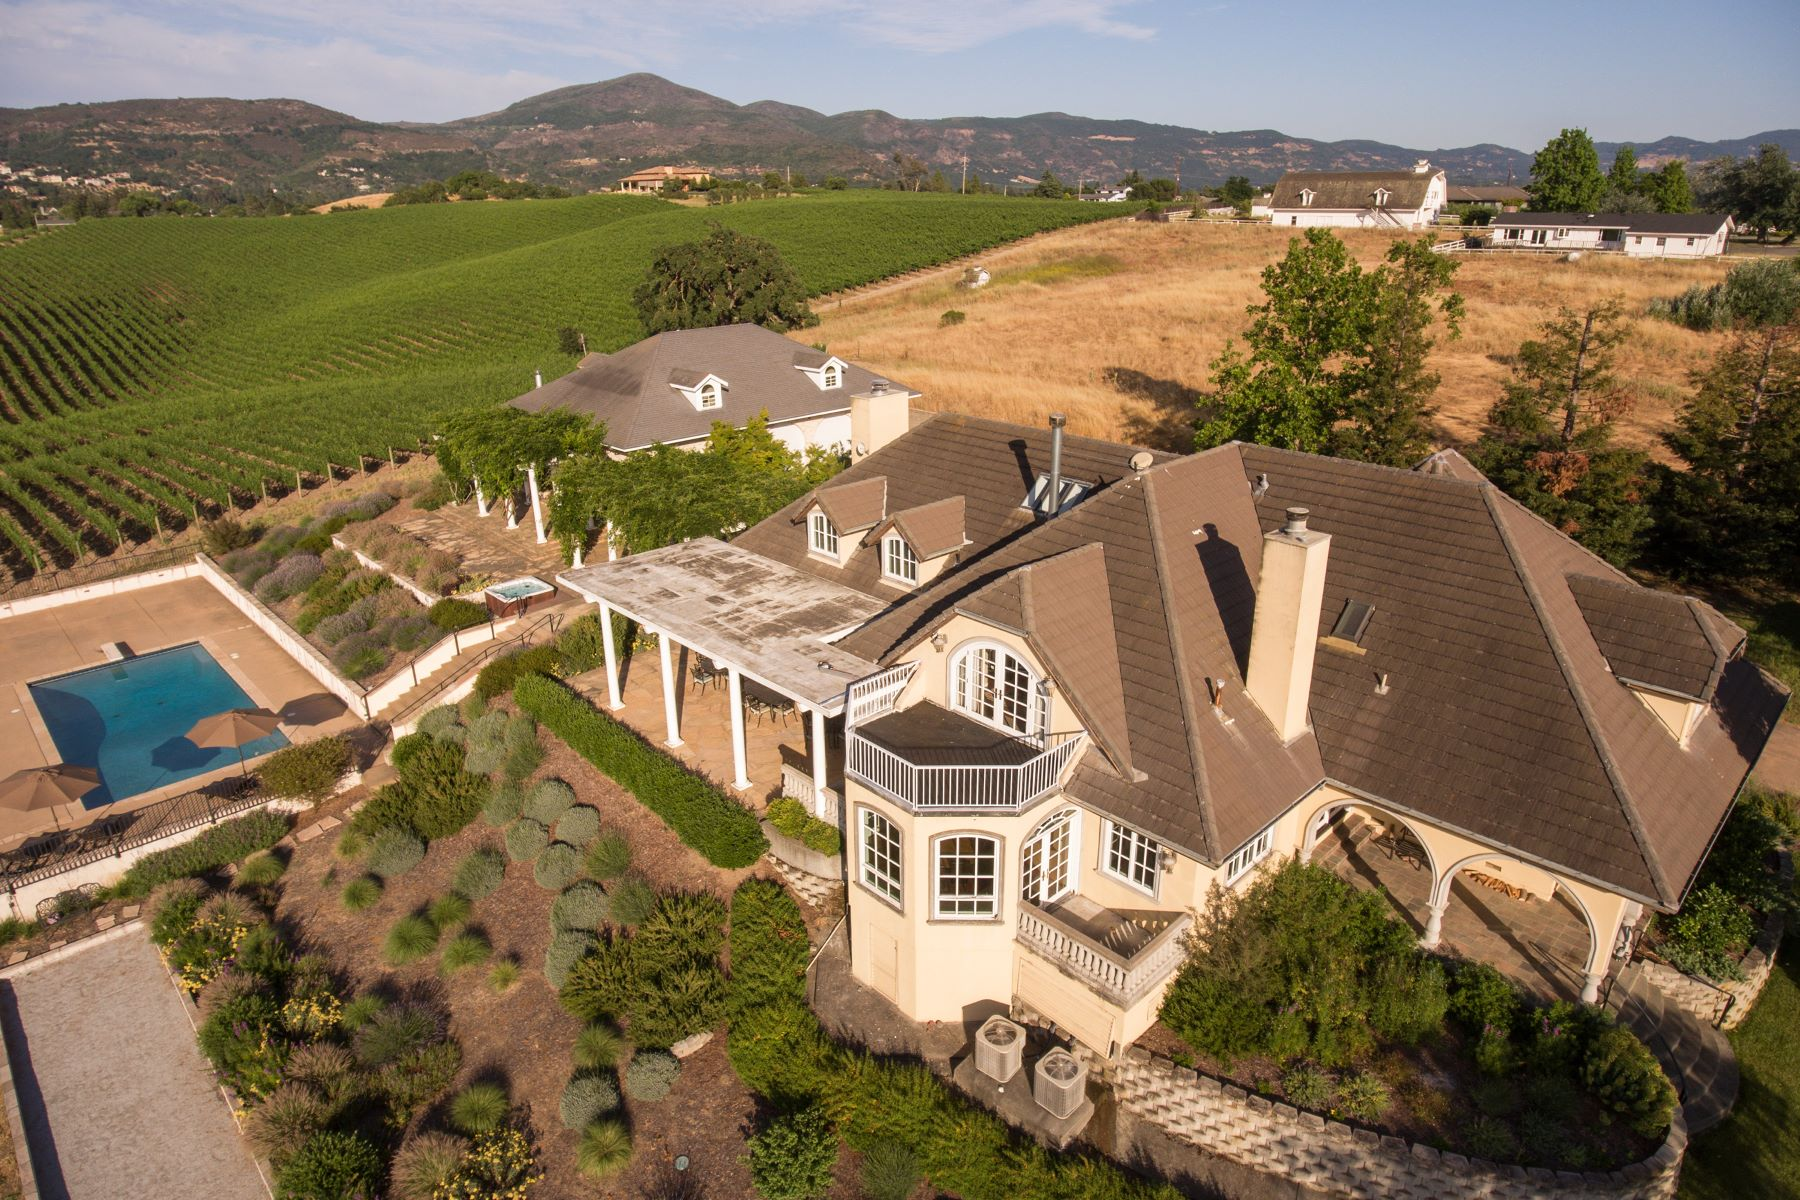 独户住宅 为 销售 在 Napa Valley Vineyard Estate with Panoramic Views 1100 Hardman Avenue 纳帕, 加利福尼亚州, 94558 美国